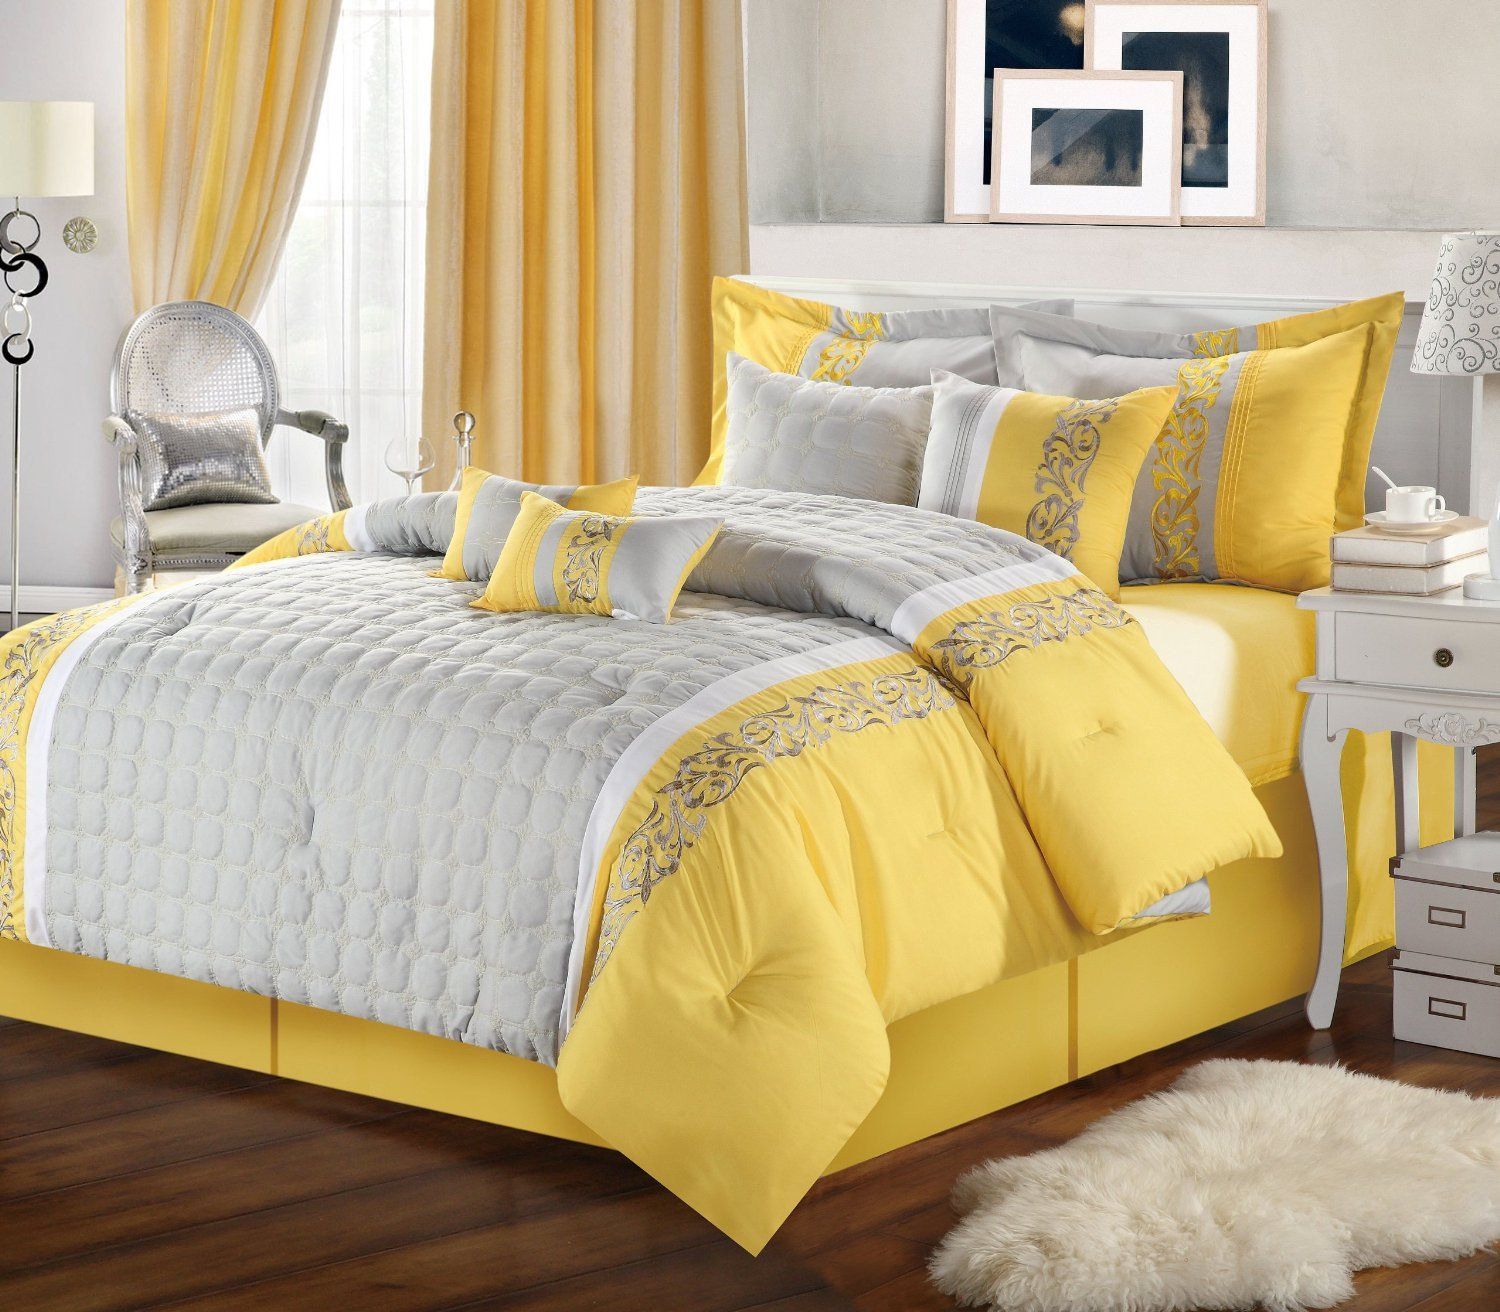 Grey and Yellow Decor Ideas Best Of Gray and Yellow Bedroom with Calm Nuance Traba Homes